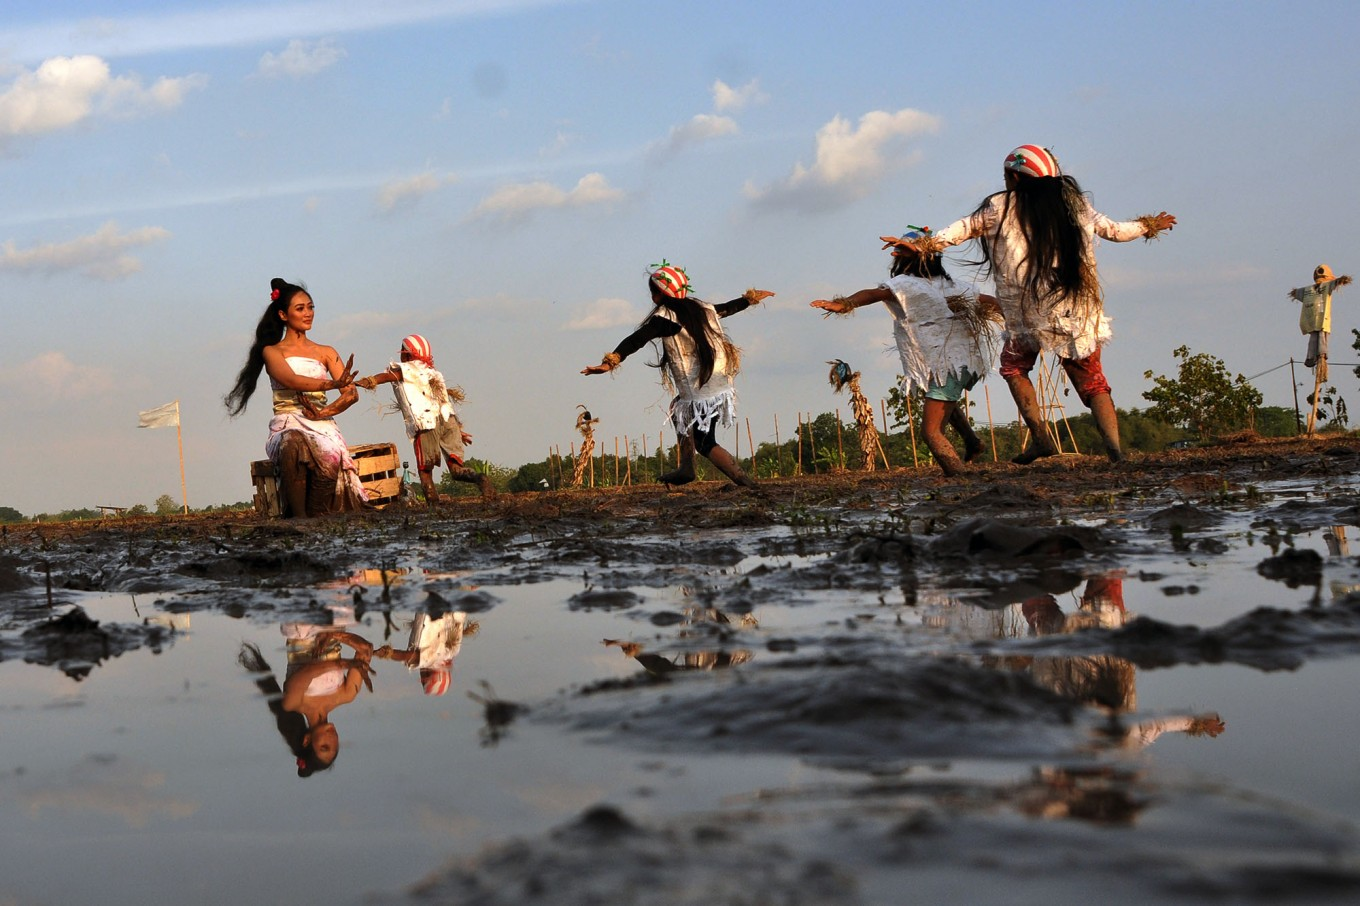 """Lintang, a professional dancer, adopts her role as Ibu Pertiwi during the Mbok Sri Mulih performance while other dancers take roles as """"memedi sawah"""" (scarecrows), a symbol of pest expulsion. JP/Magnus Hendratmo"""